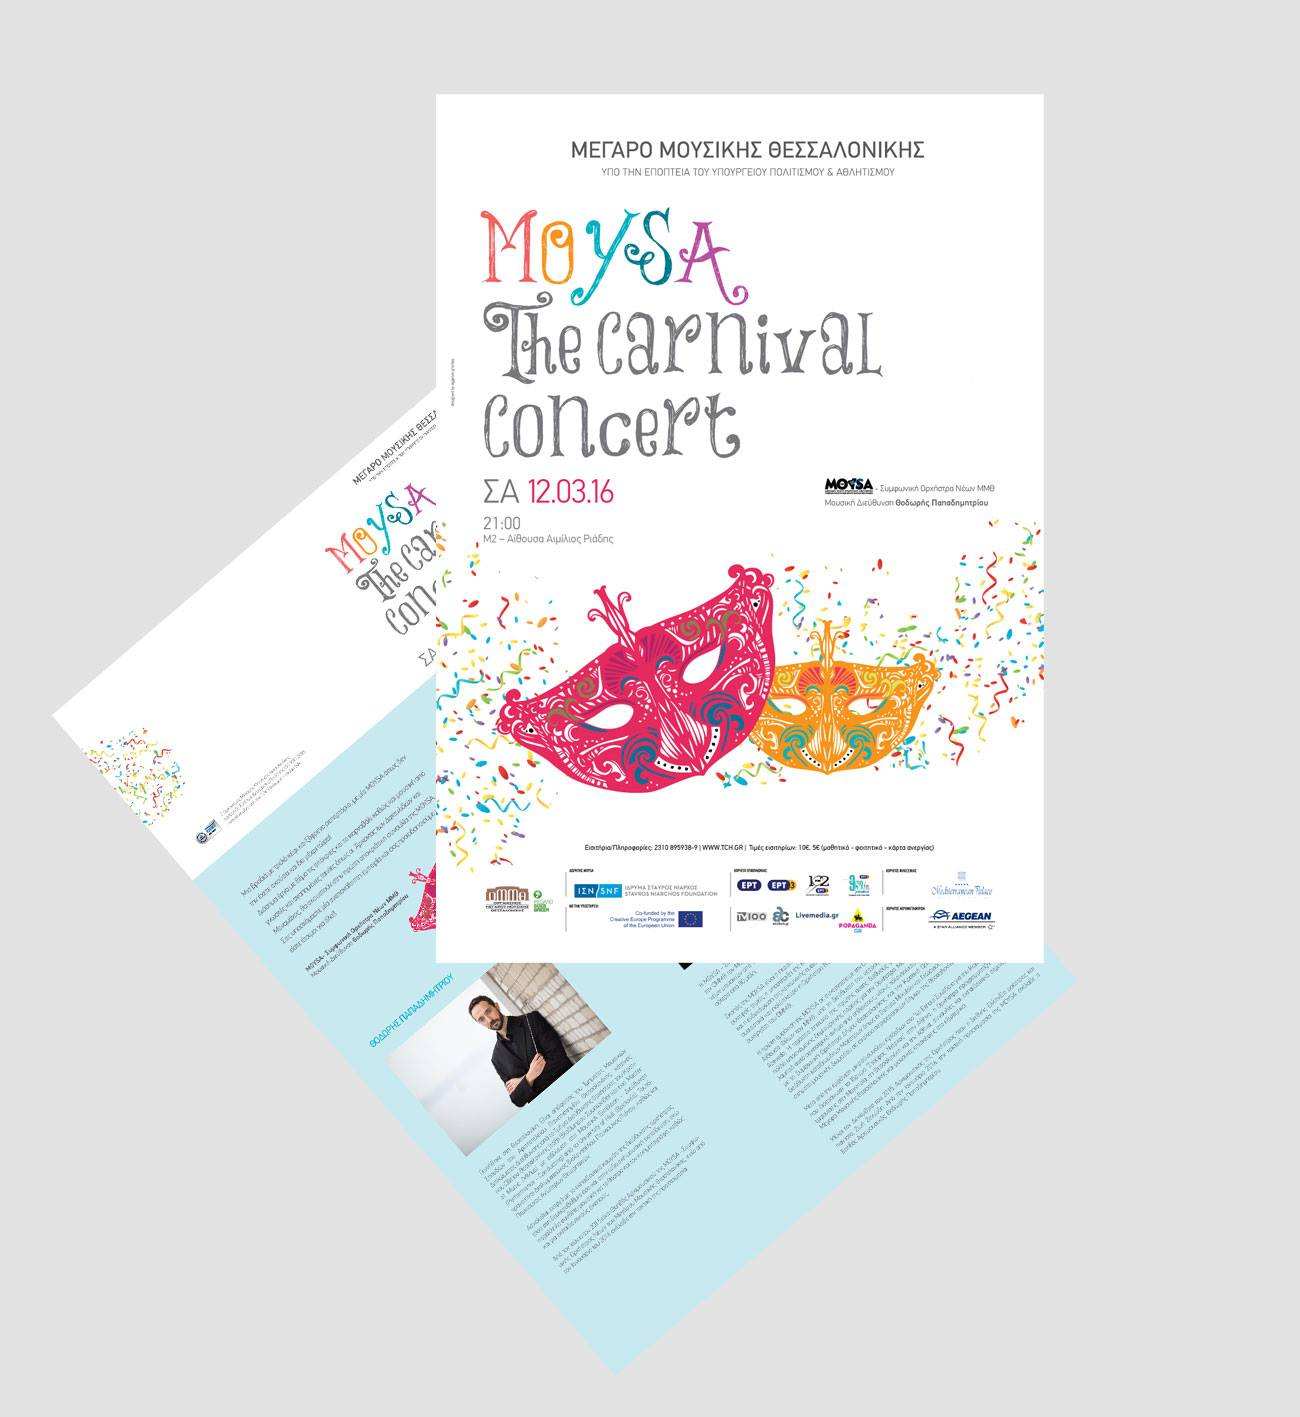 Moysa The Carnival Concert. Poster designed by Aggelos Grontas